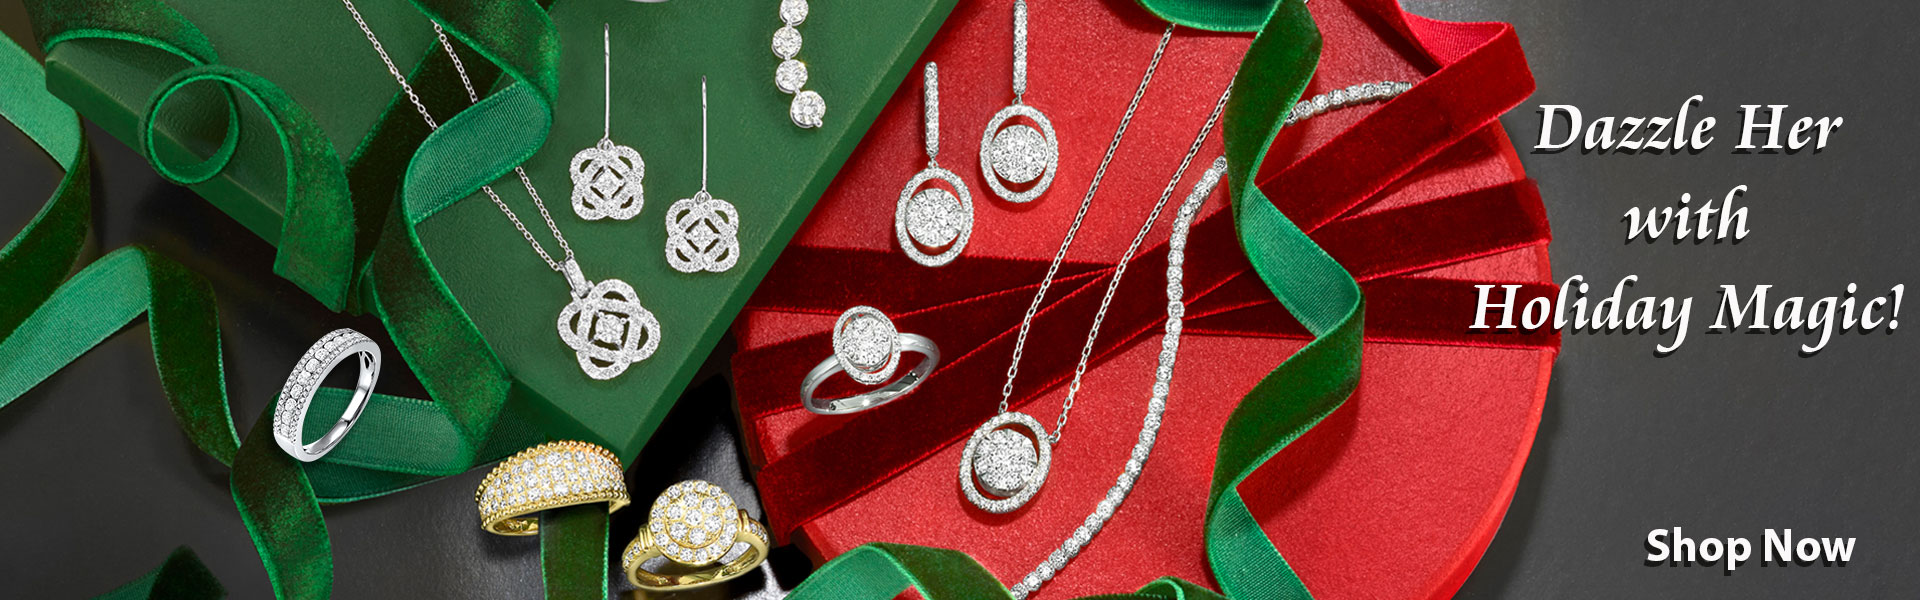 Dazzle Her with Holiday Magic!